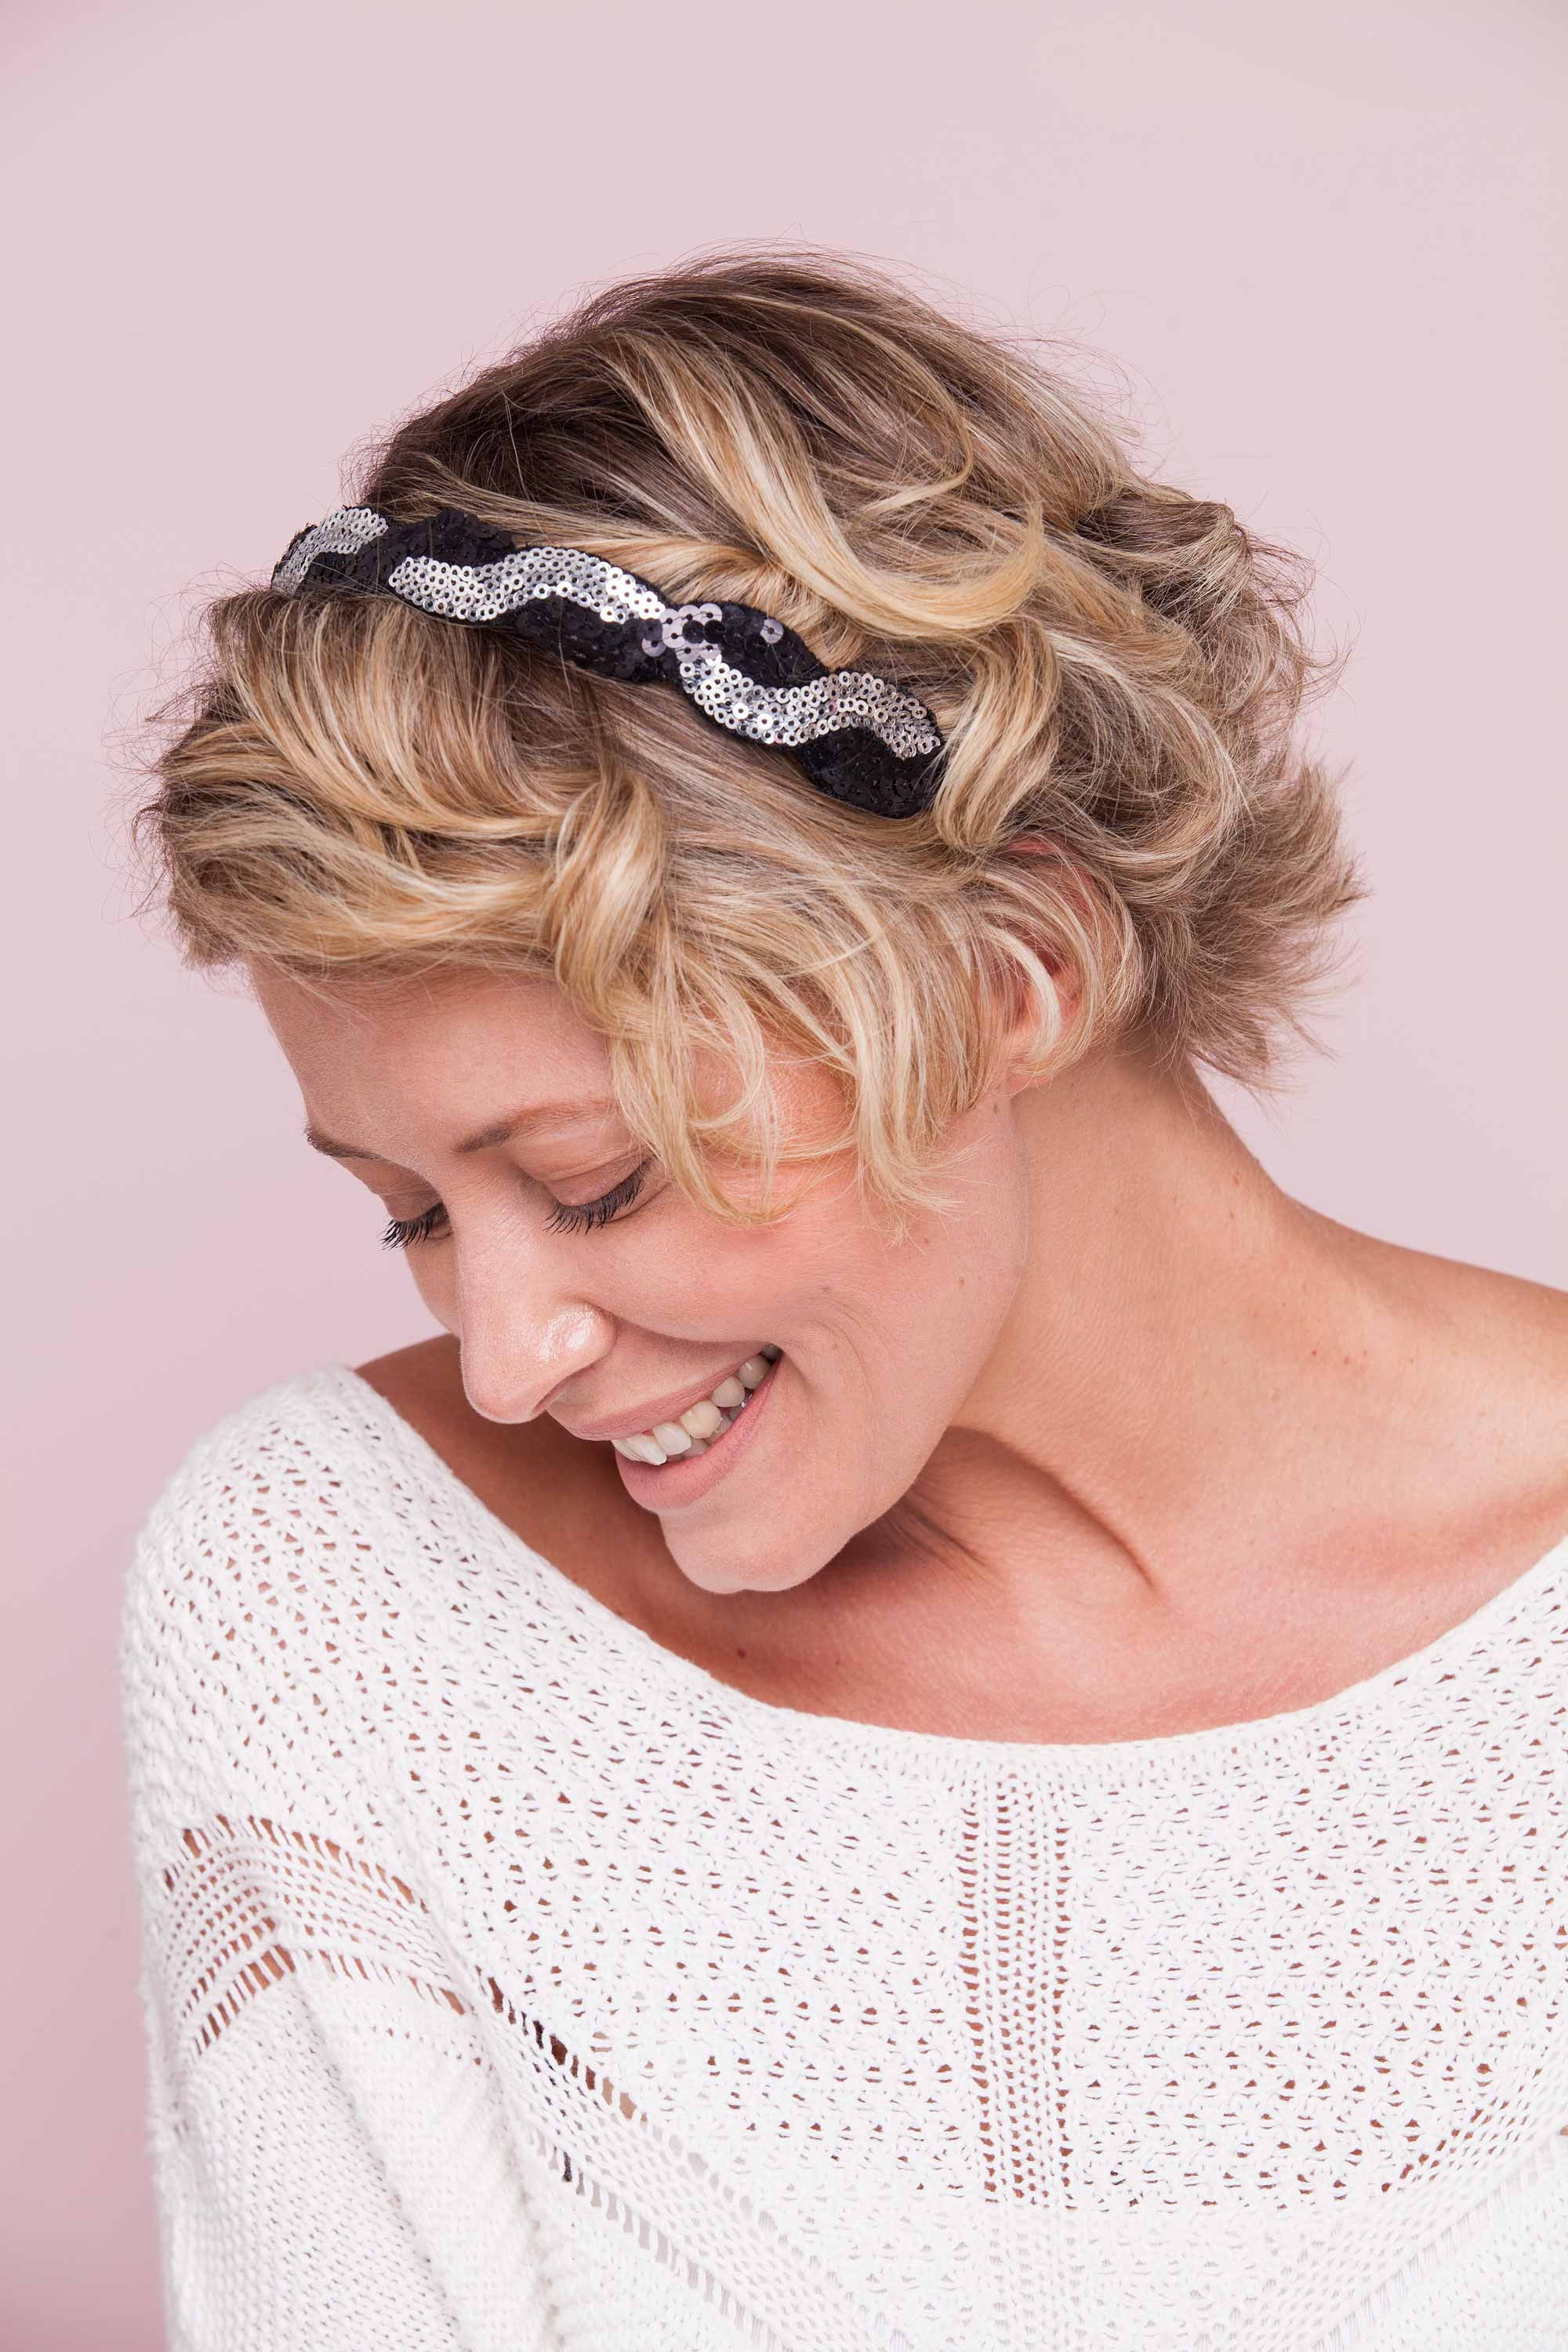 model with headband and beachy waves wearing white and smiling